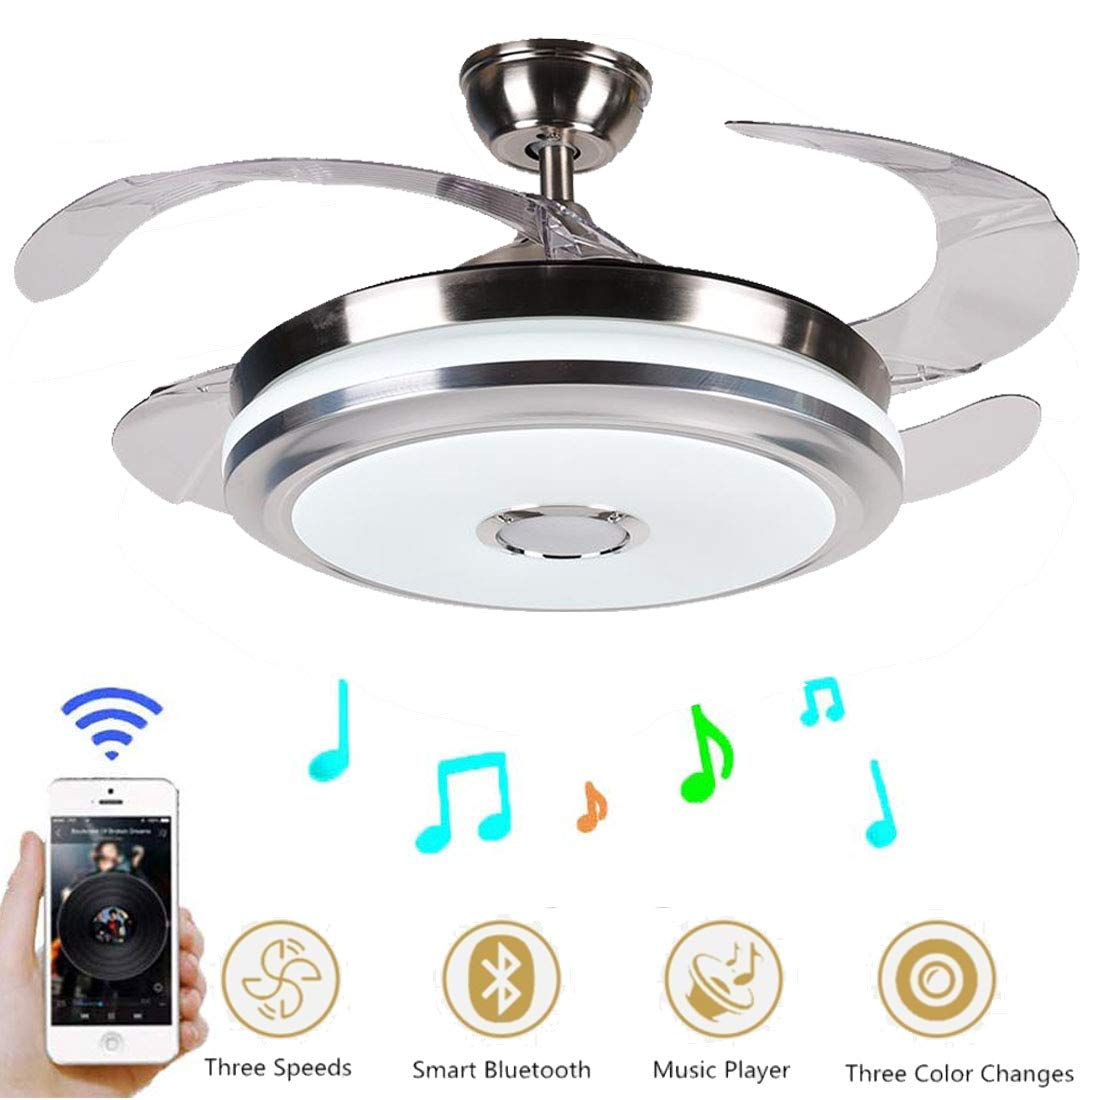 42 Inch Modern Music Ceiling Fan Light with Bluetooth Speaker, Remote Control 3 Color Changes Acrylic Retractable Chandelier Fans Lighting Fixtures with Silent Motor for Living Dining Room Bedroom